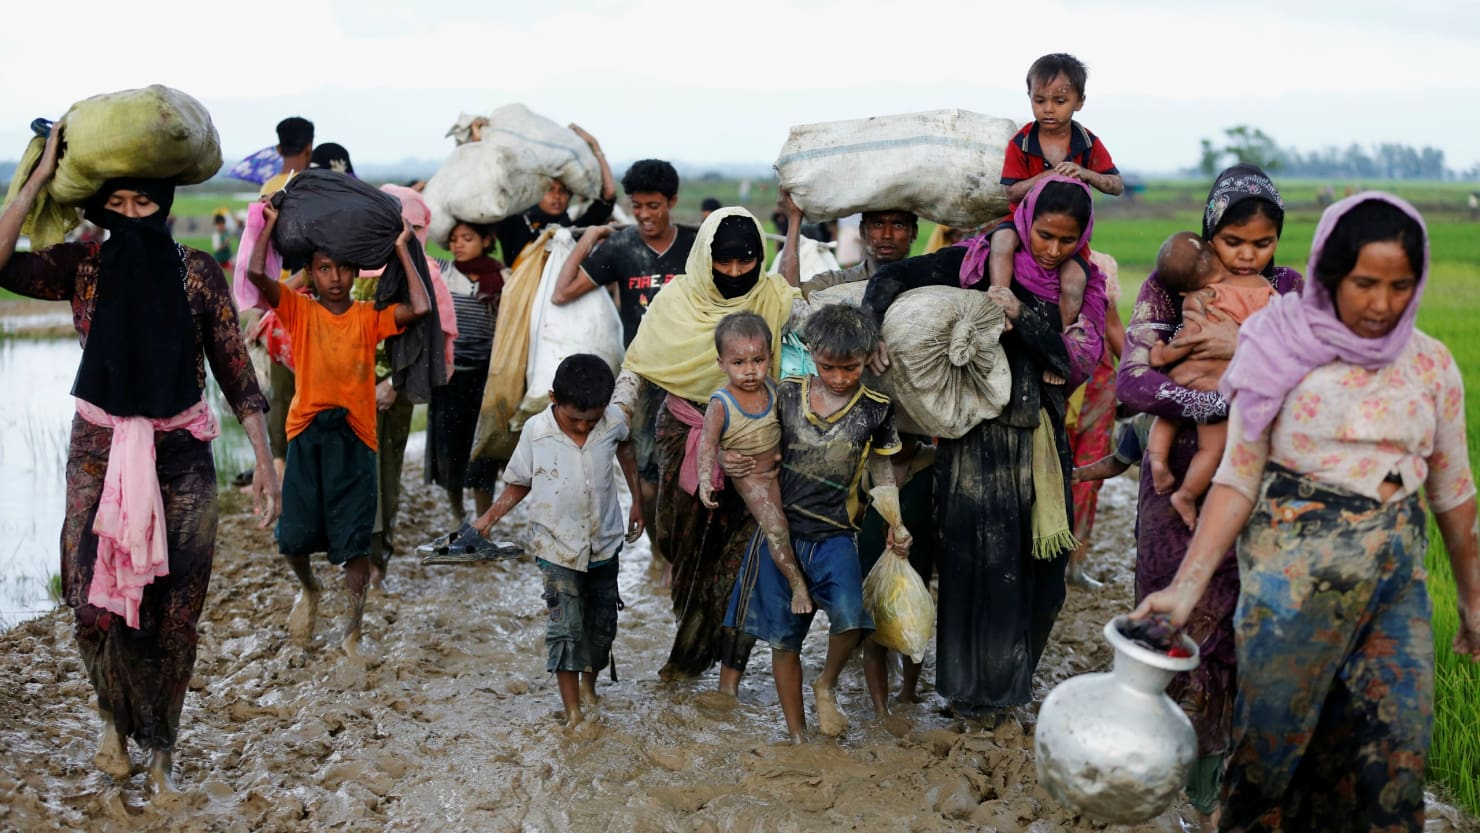 IOC Conference sheds light on plight of Rohingya refugees